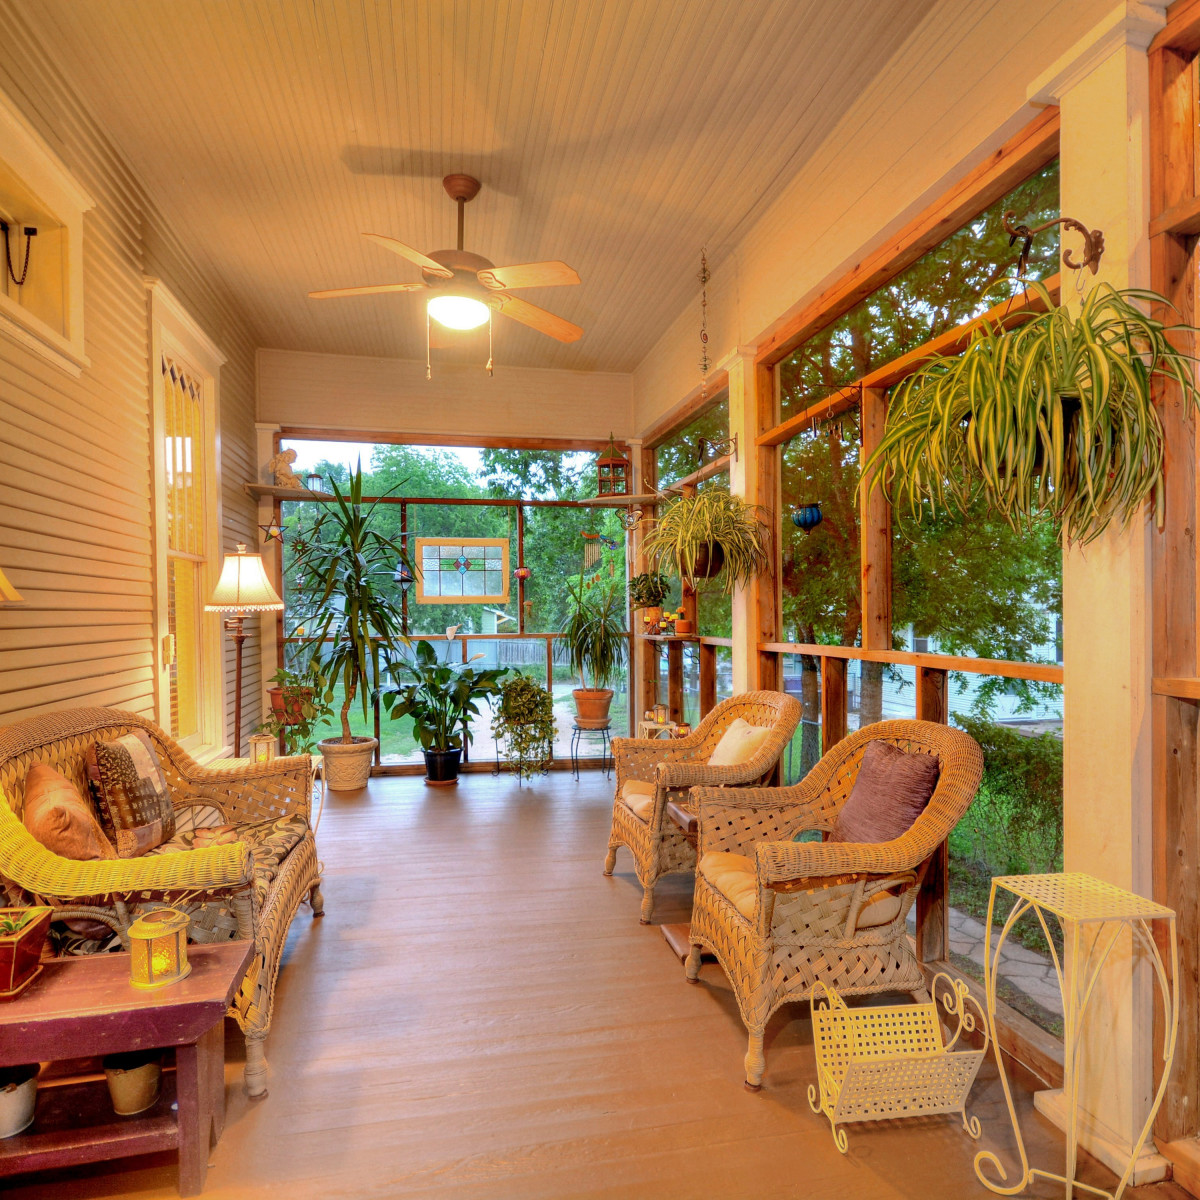 Austin home house 2416 S 2nd Street 78704 front porch